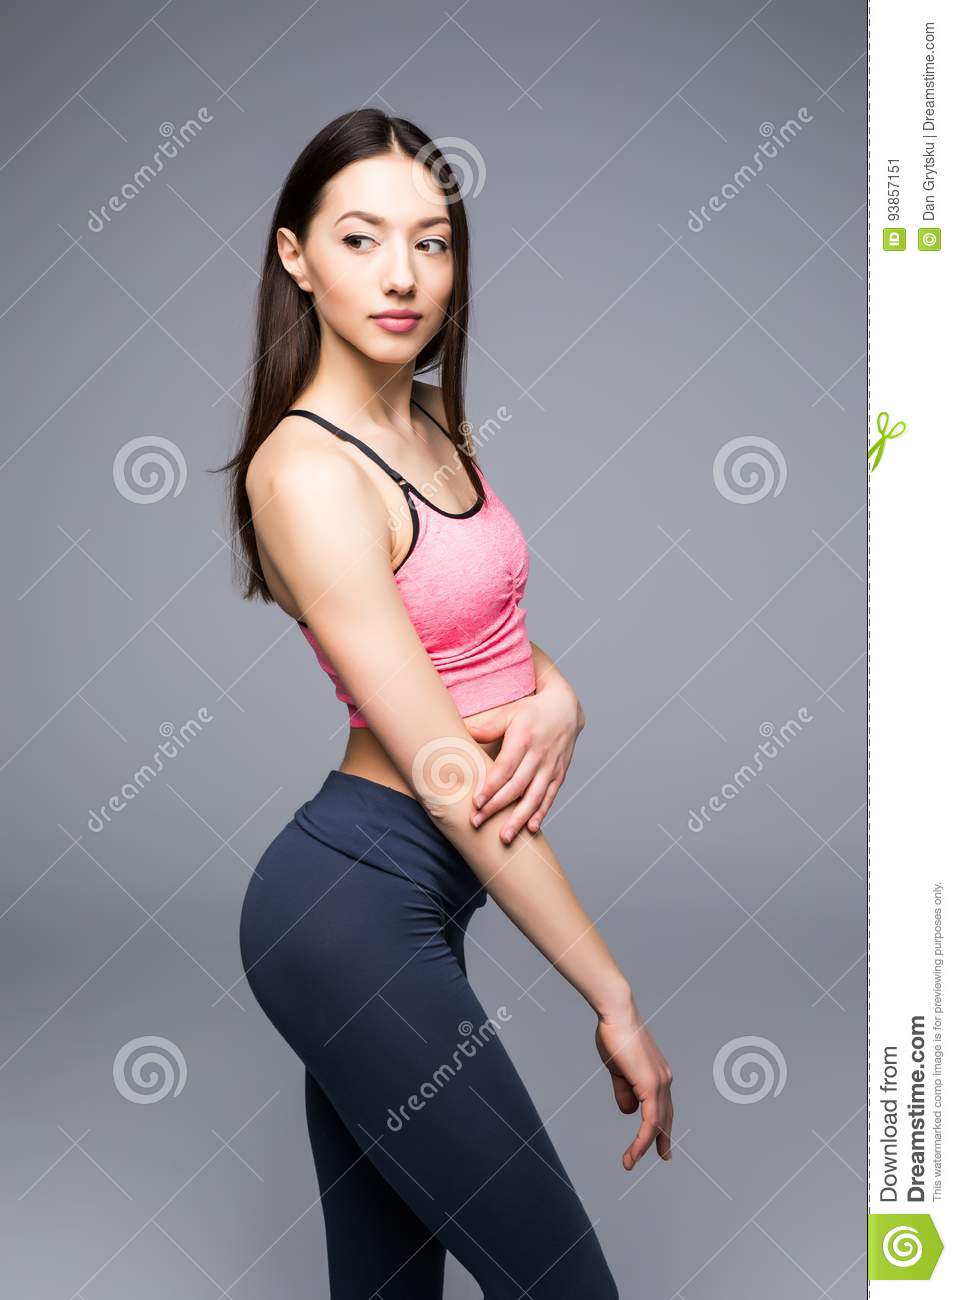 Fitness woman in sports clothes posing on gray background, studio shot